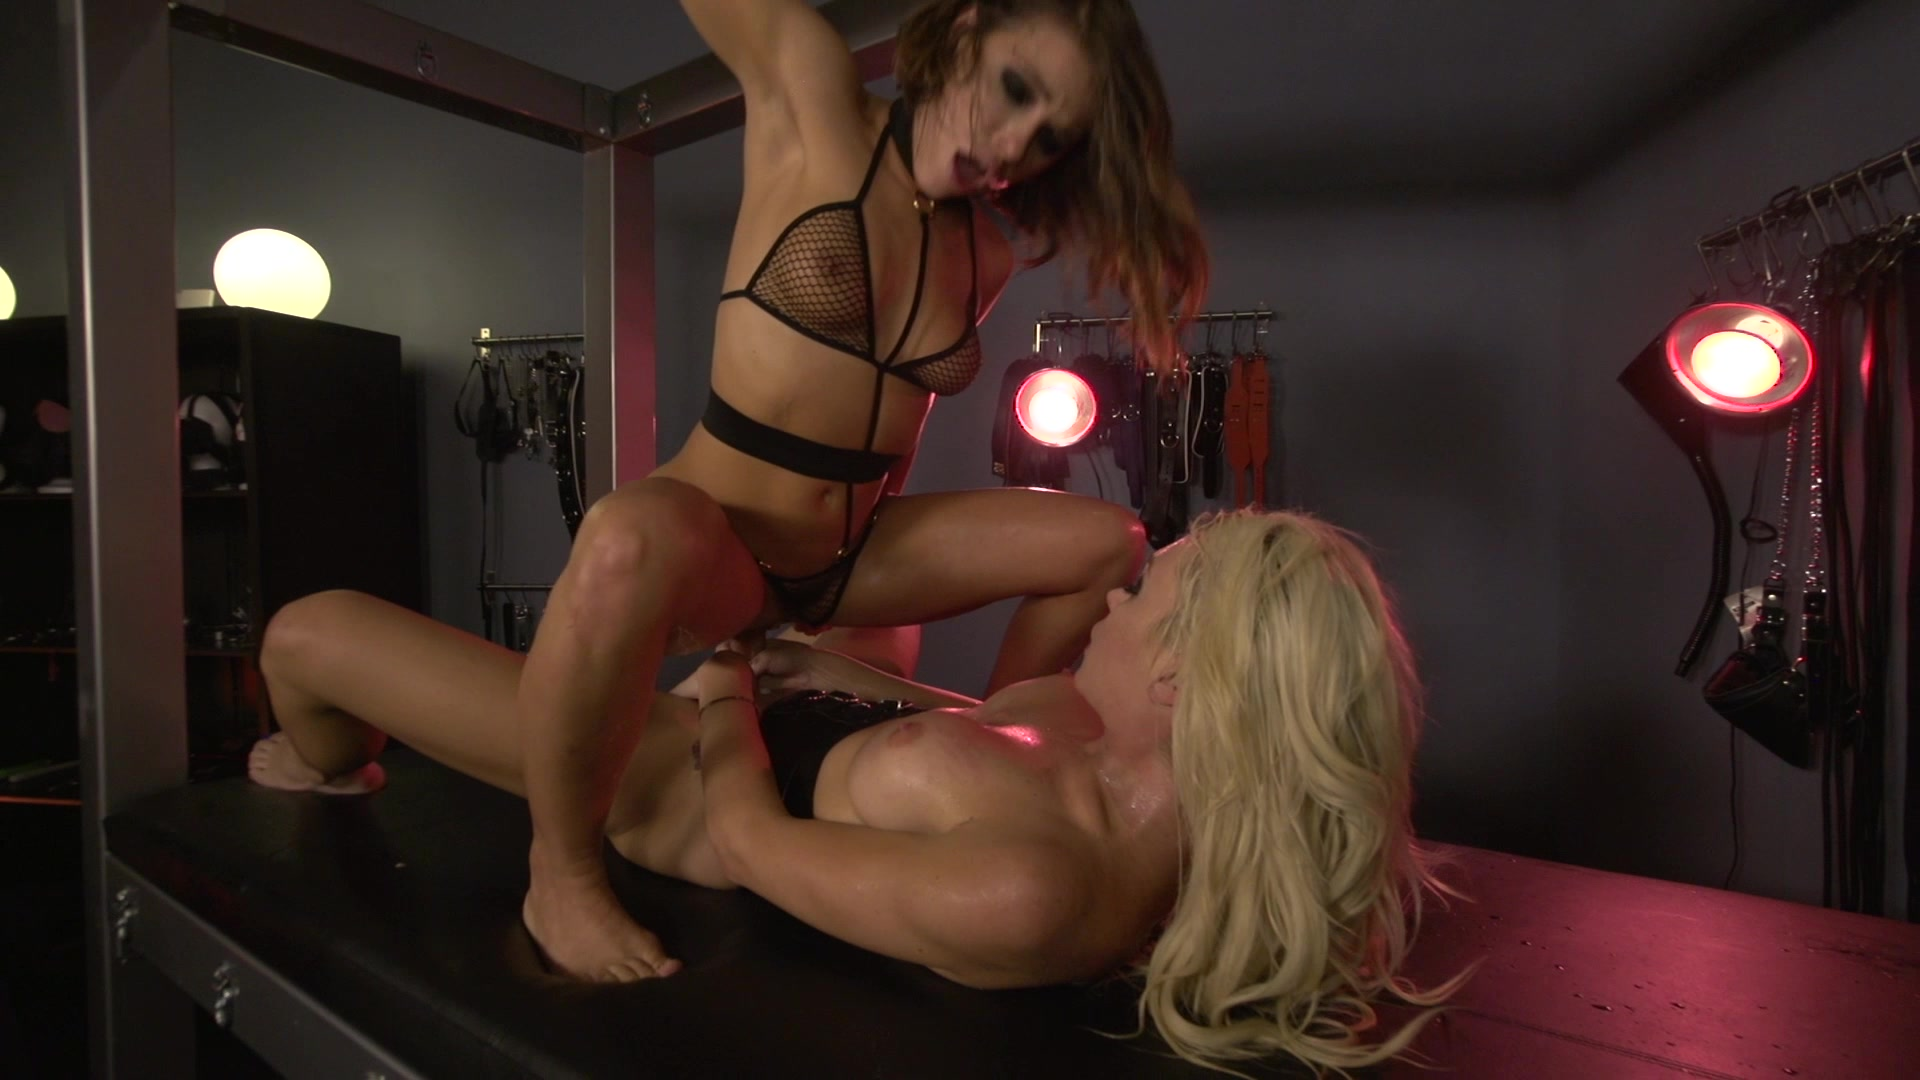 Scene with Adriana Chechik and Aubrey Kate - image 13 out of 20